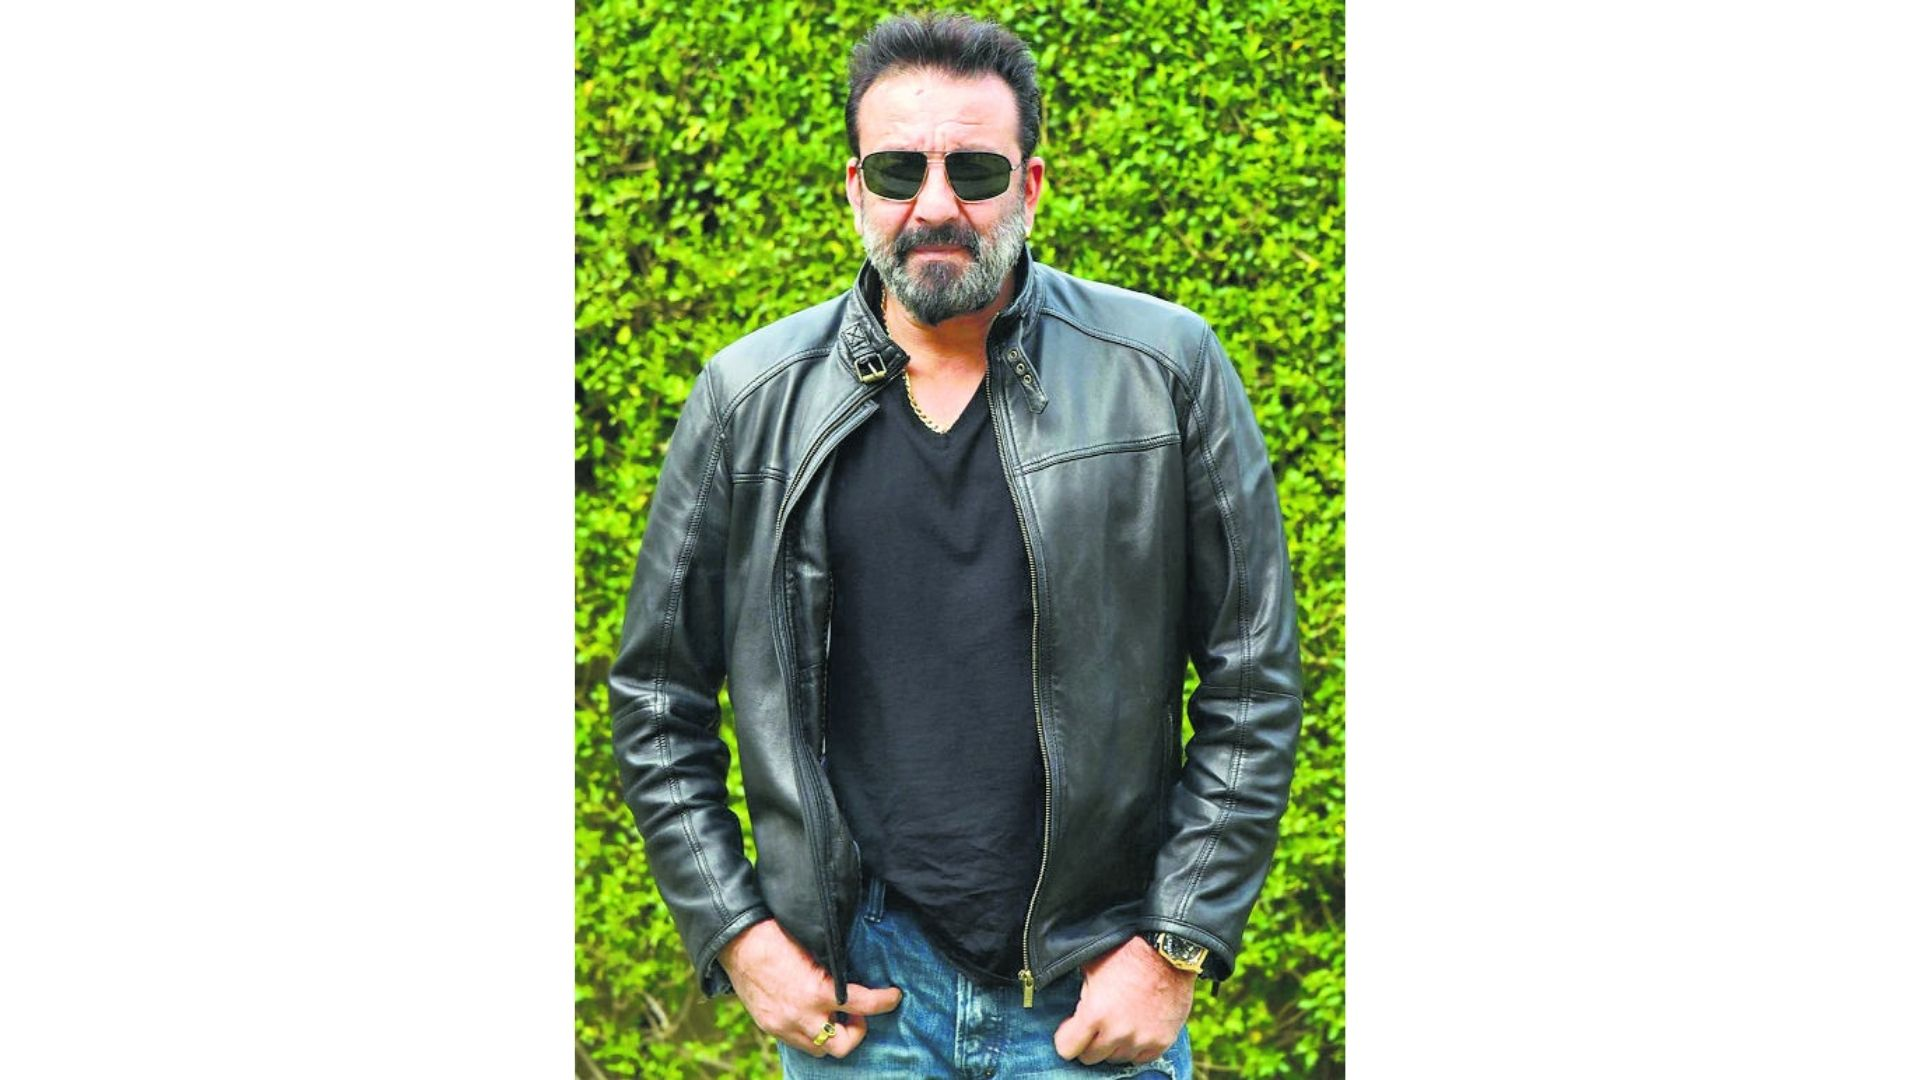 3 Times When Sanjay Dutt Made Headlines With These Controversies